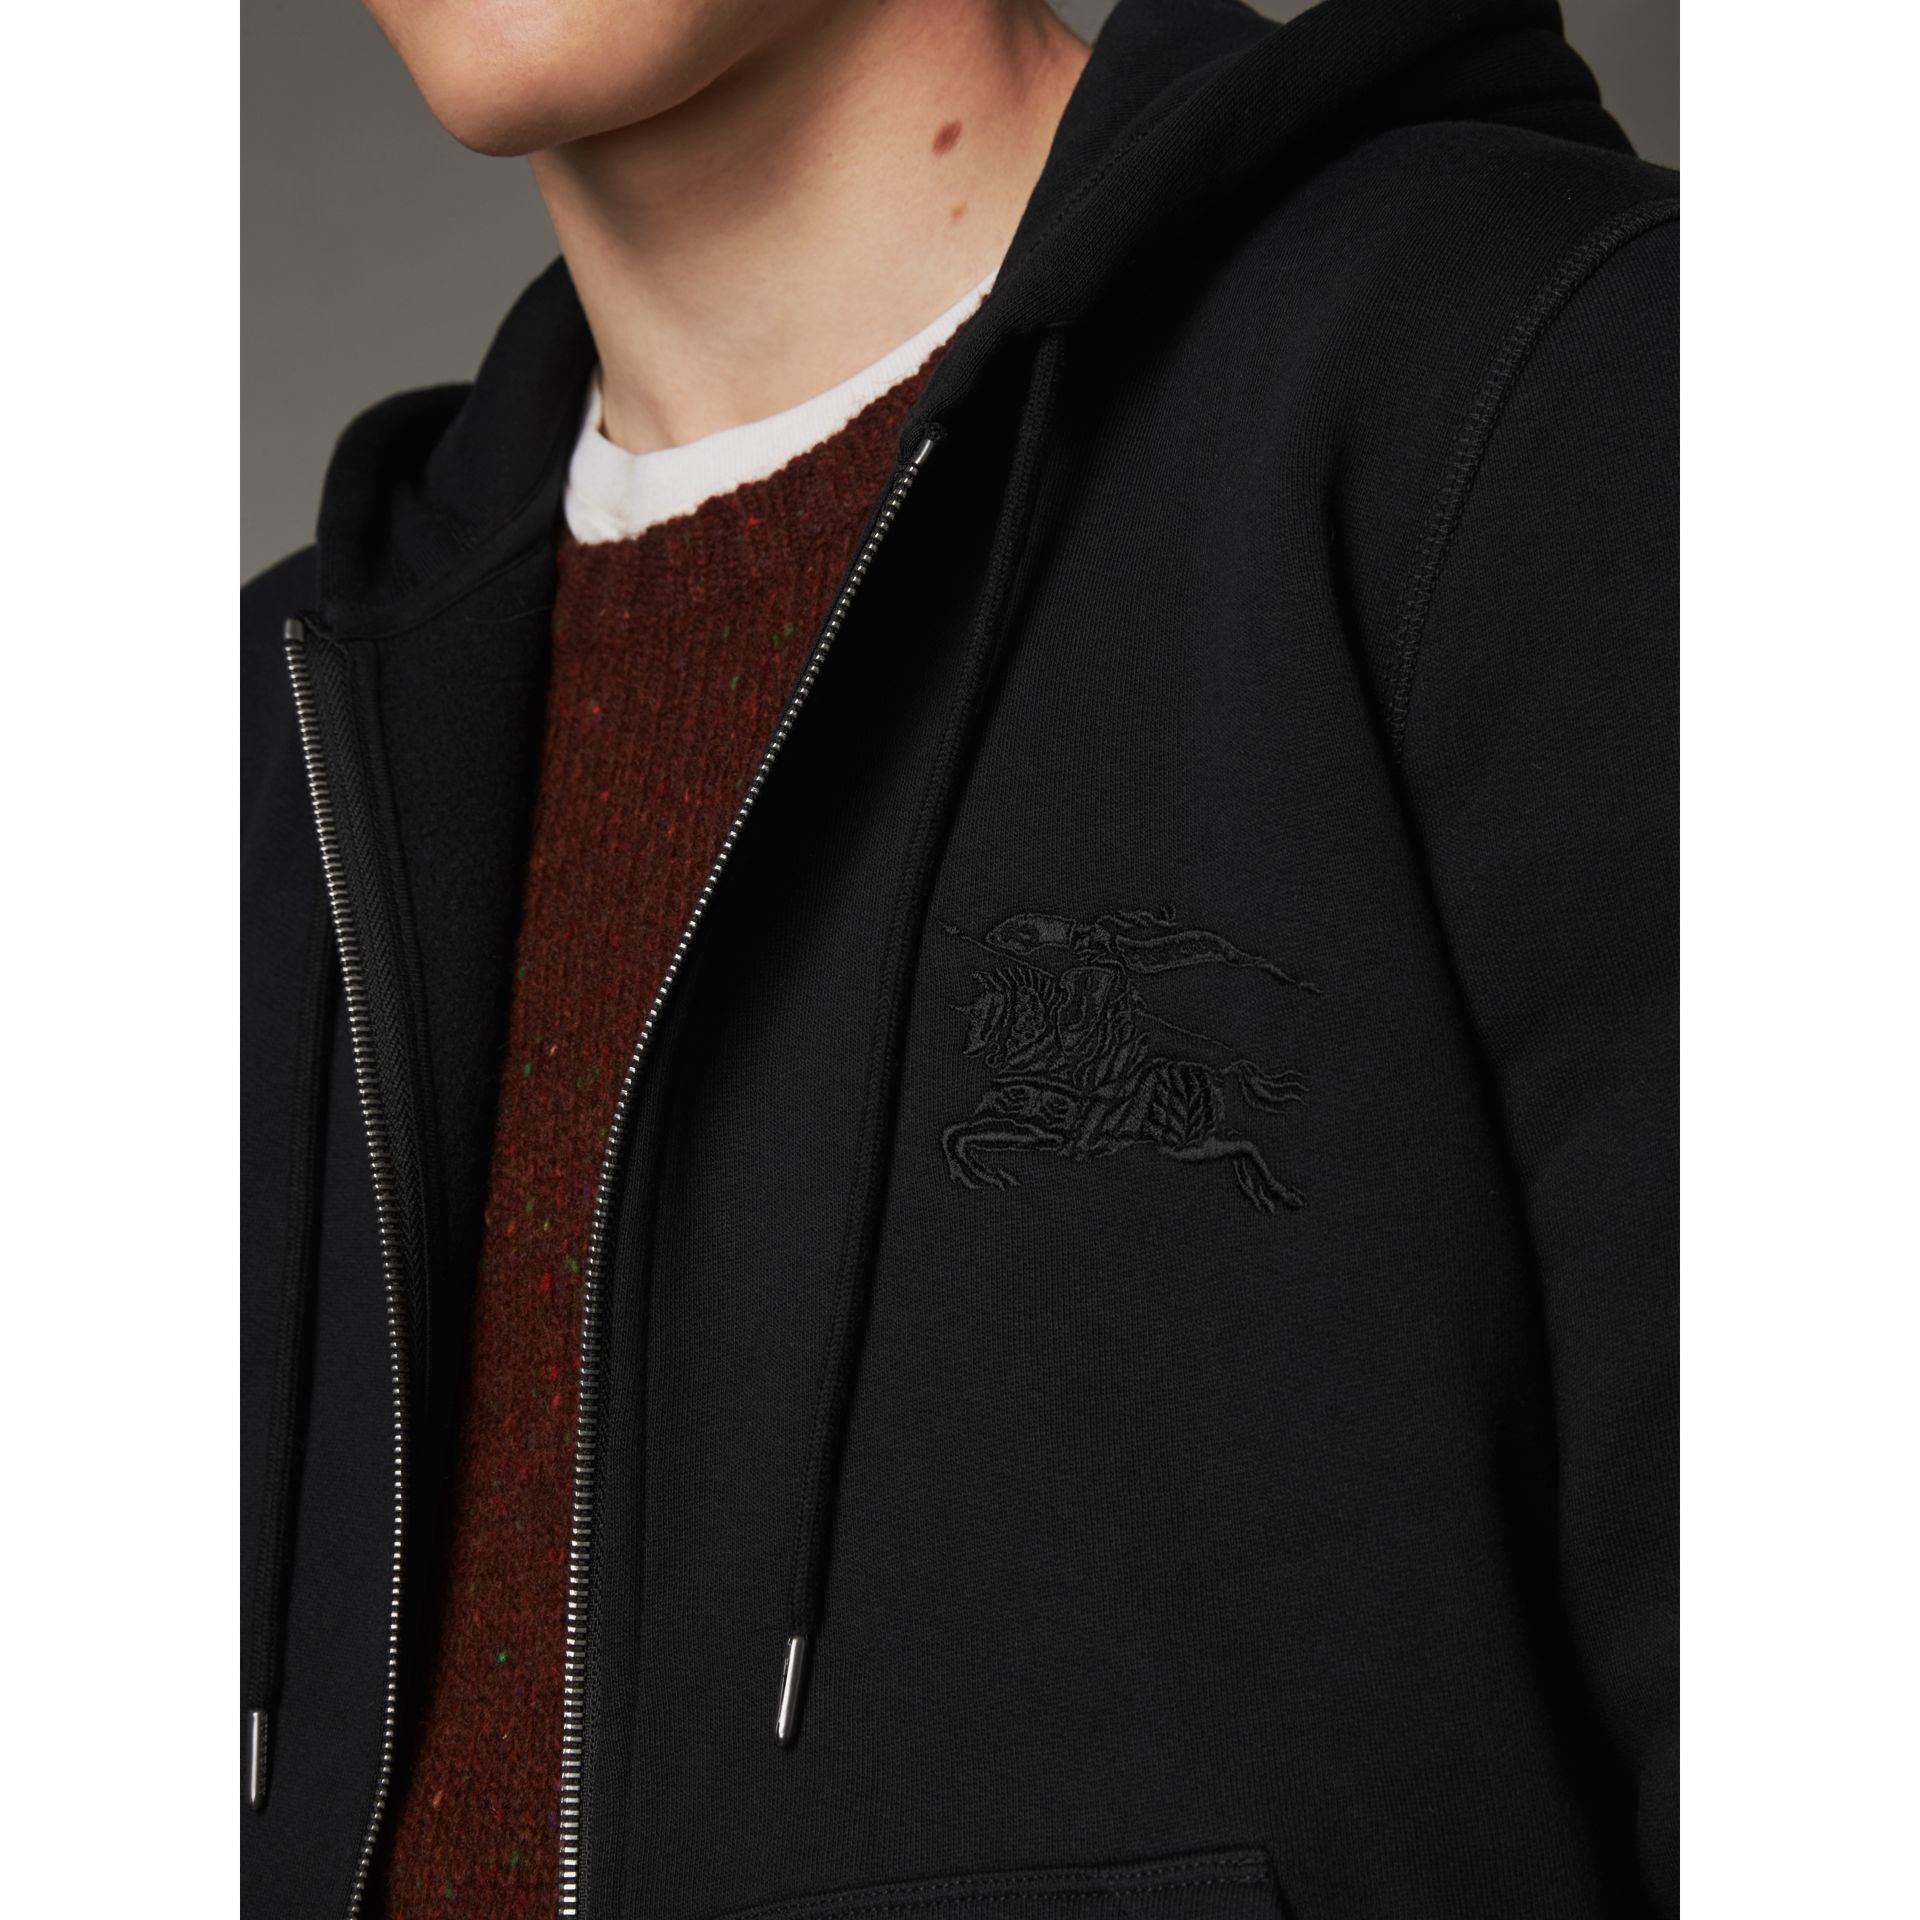 Equestrian Knight Device Jersey Hooded Zip-front Top in Black - Men | Burberry United Kingdom - gallery image 2